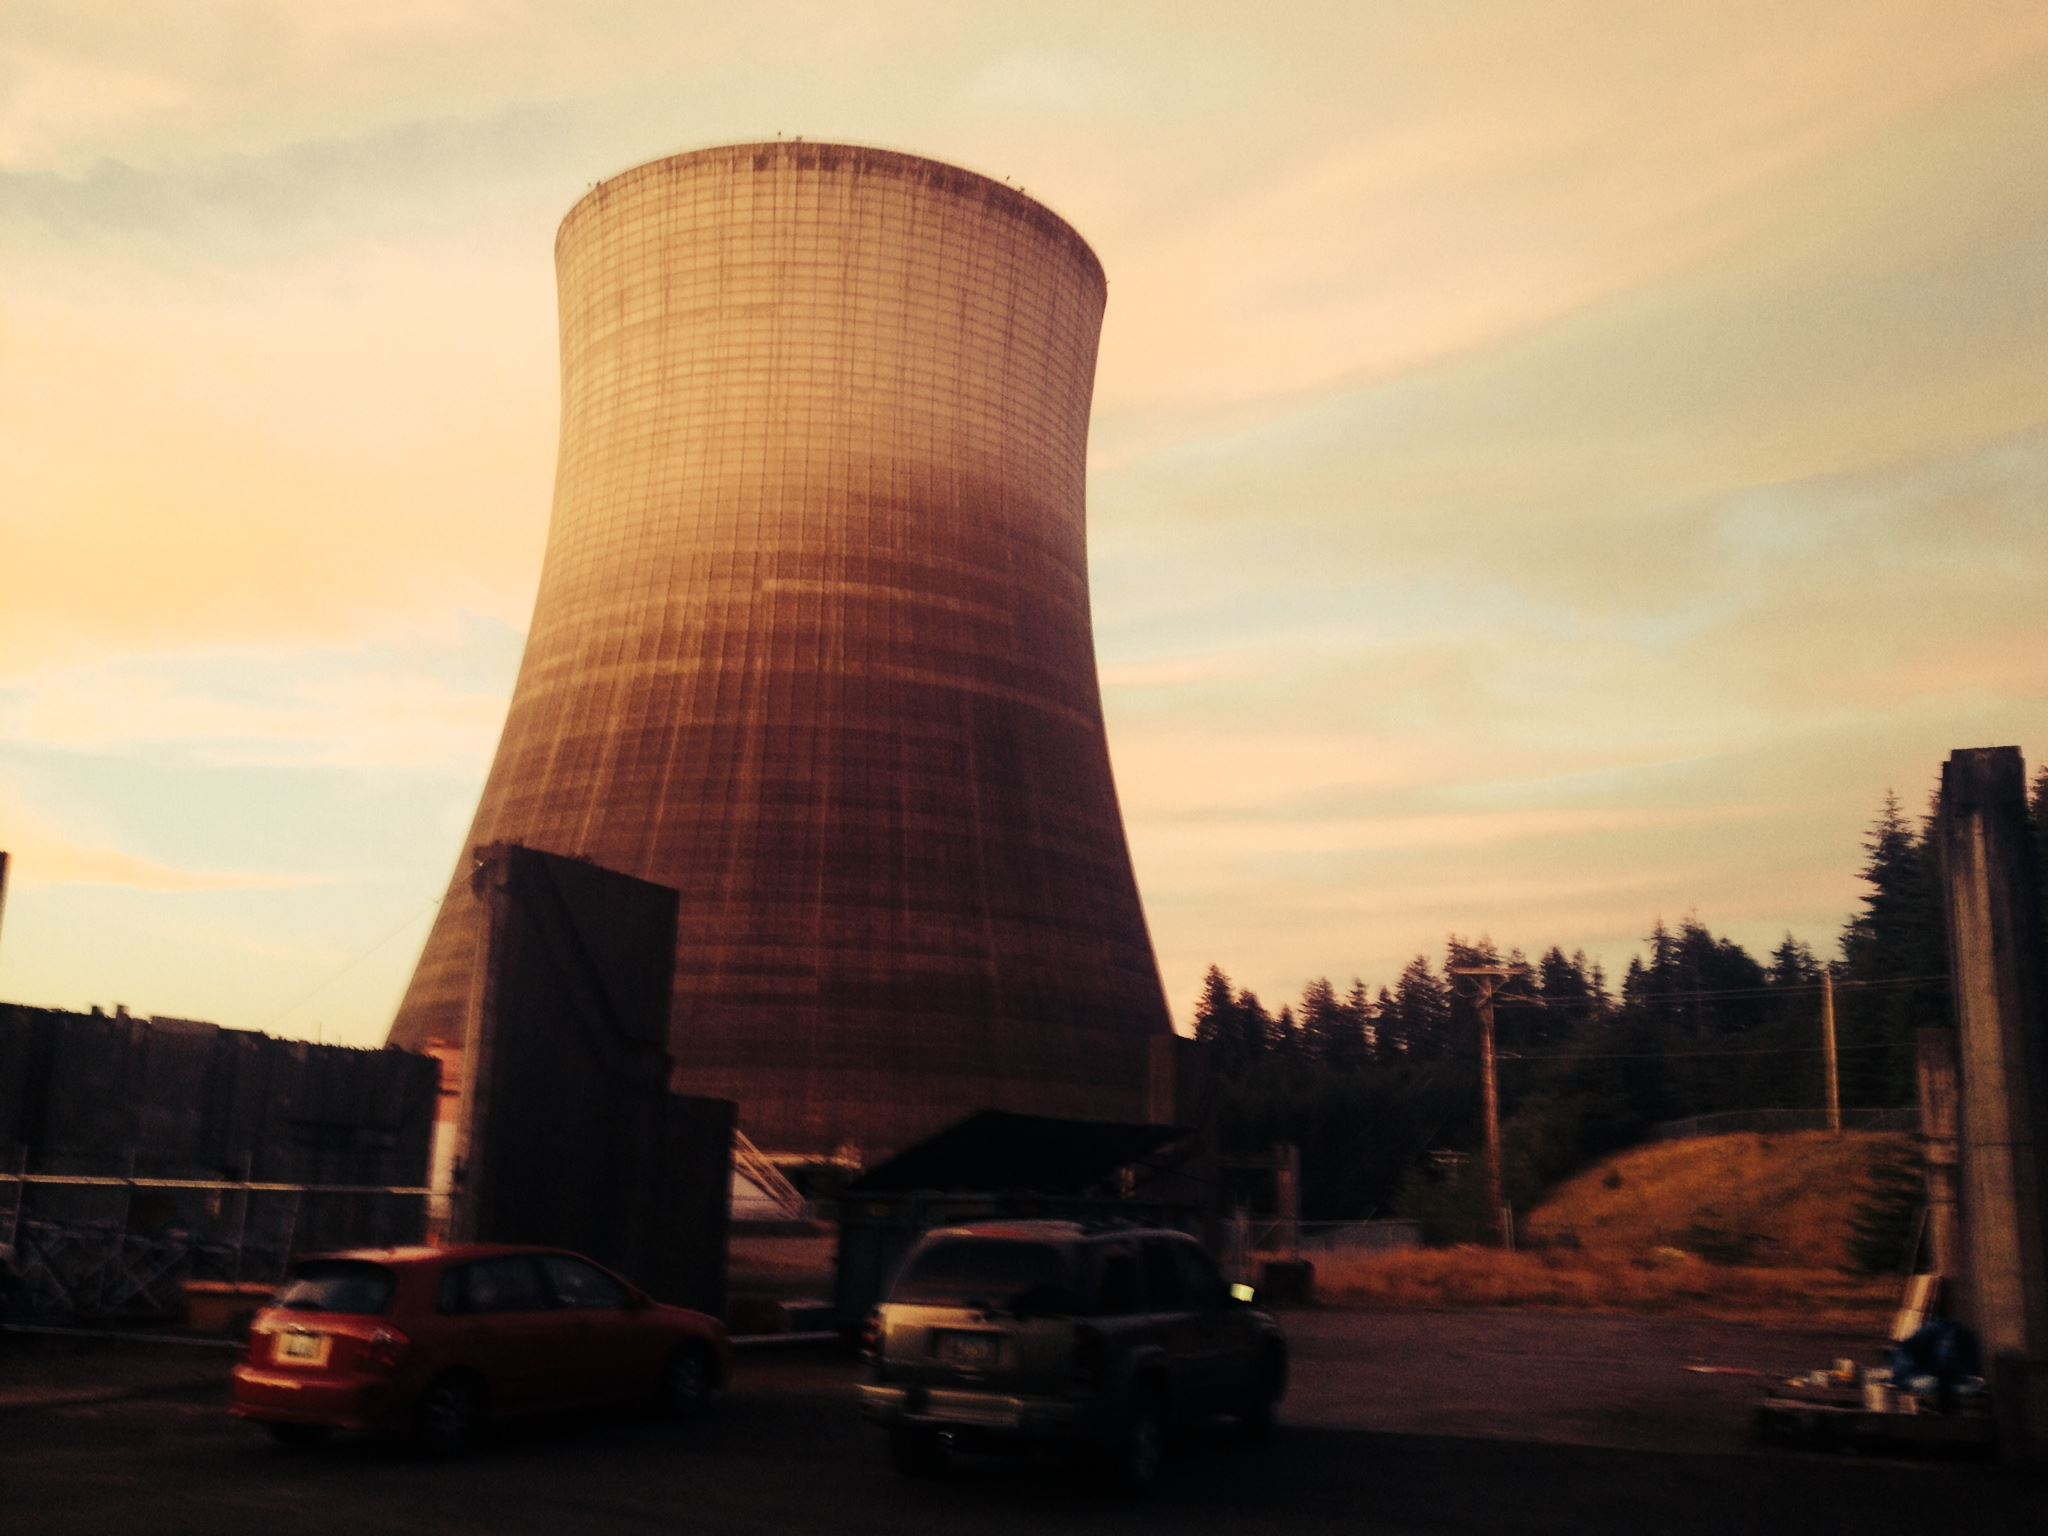 One of the massive cooling towers at the SATSOP Nuclear Power Plant.